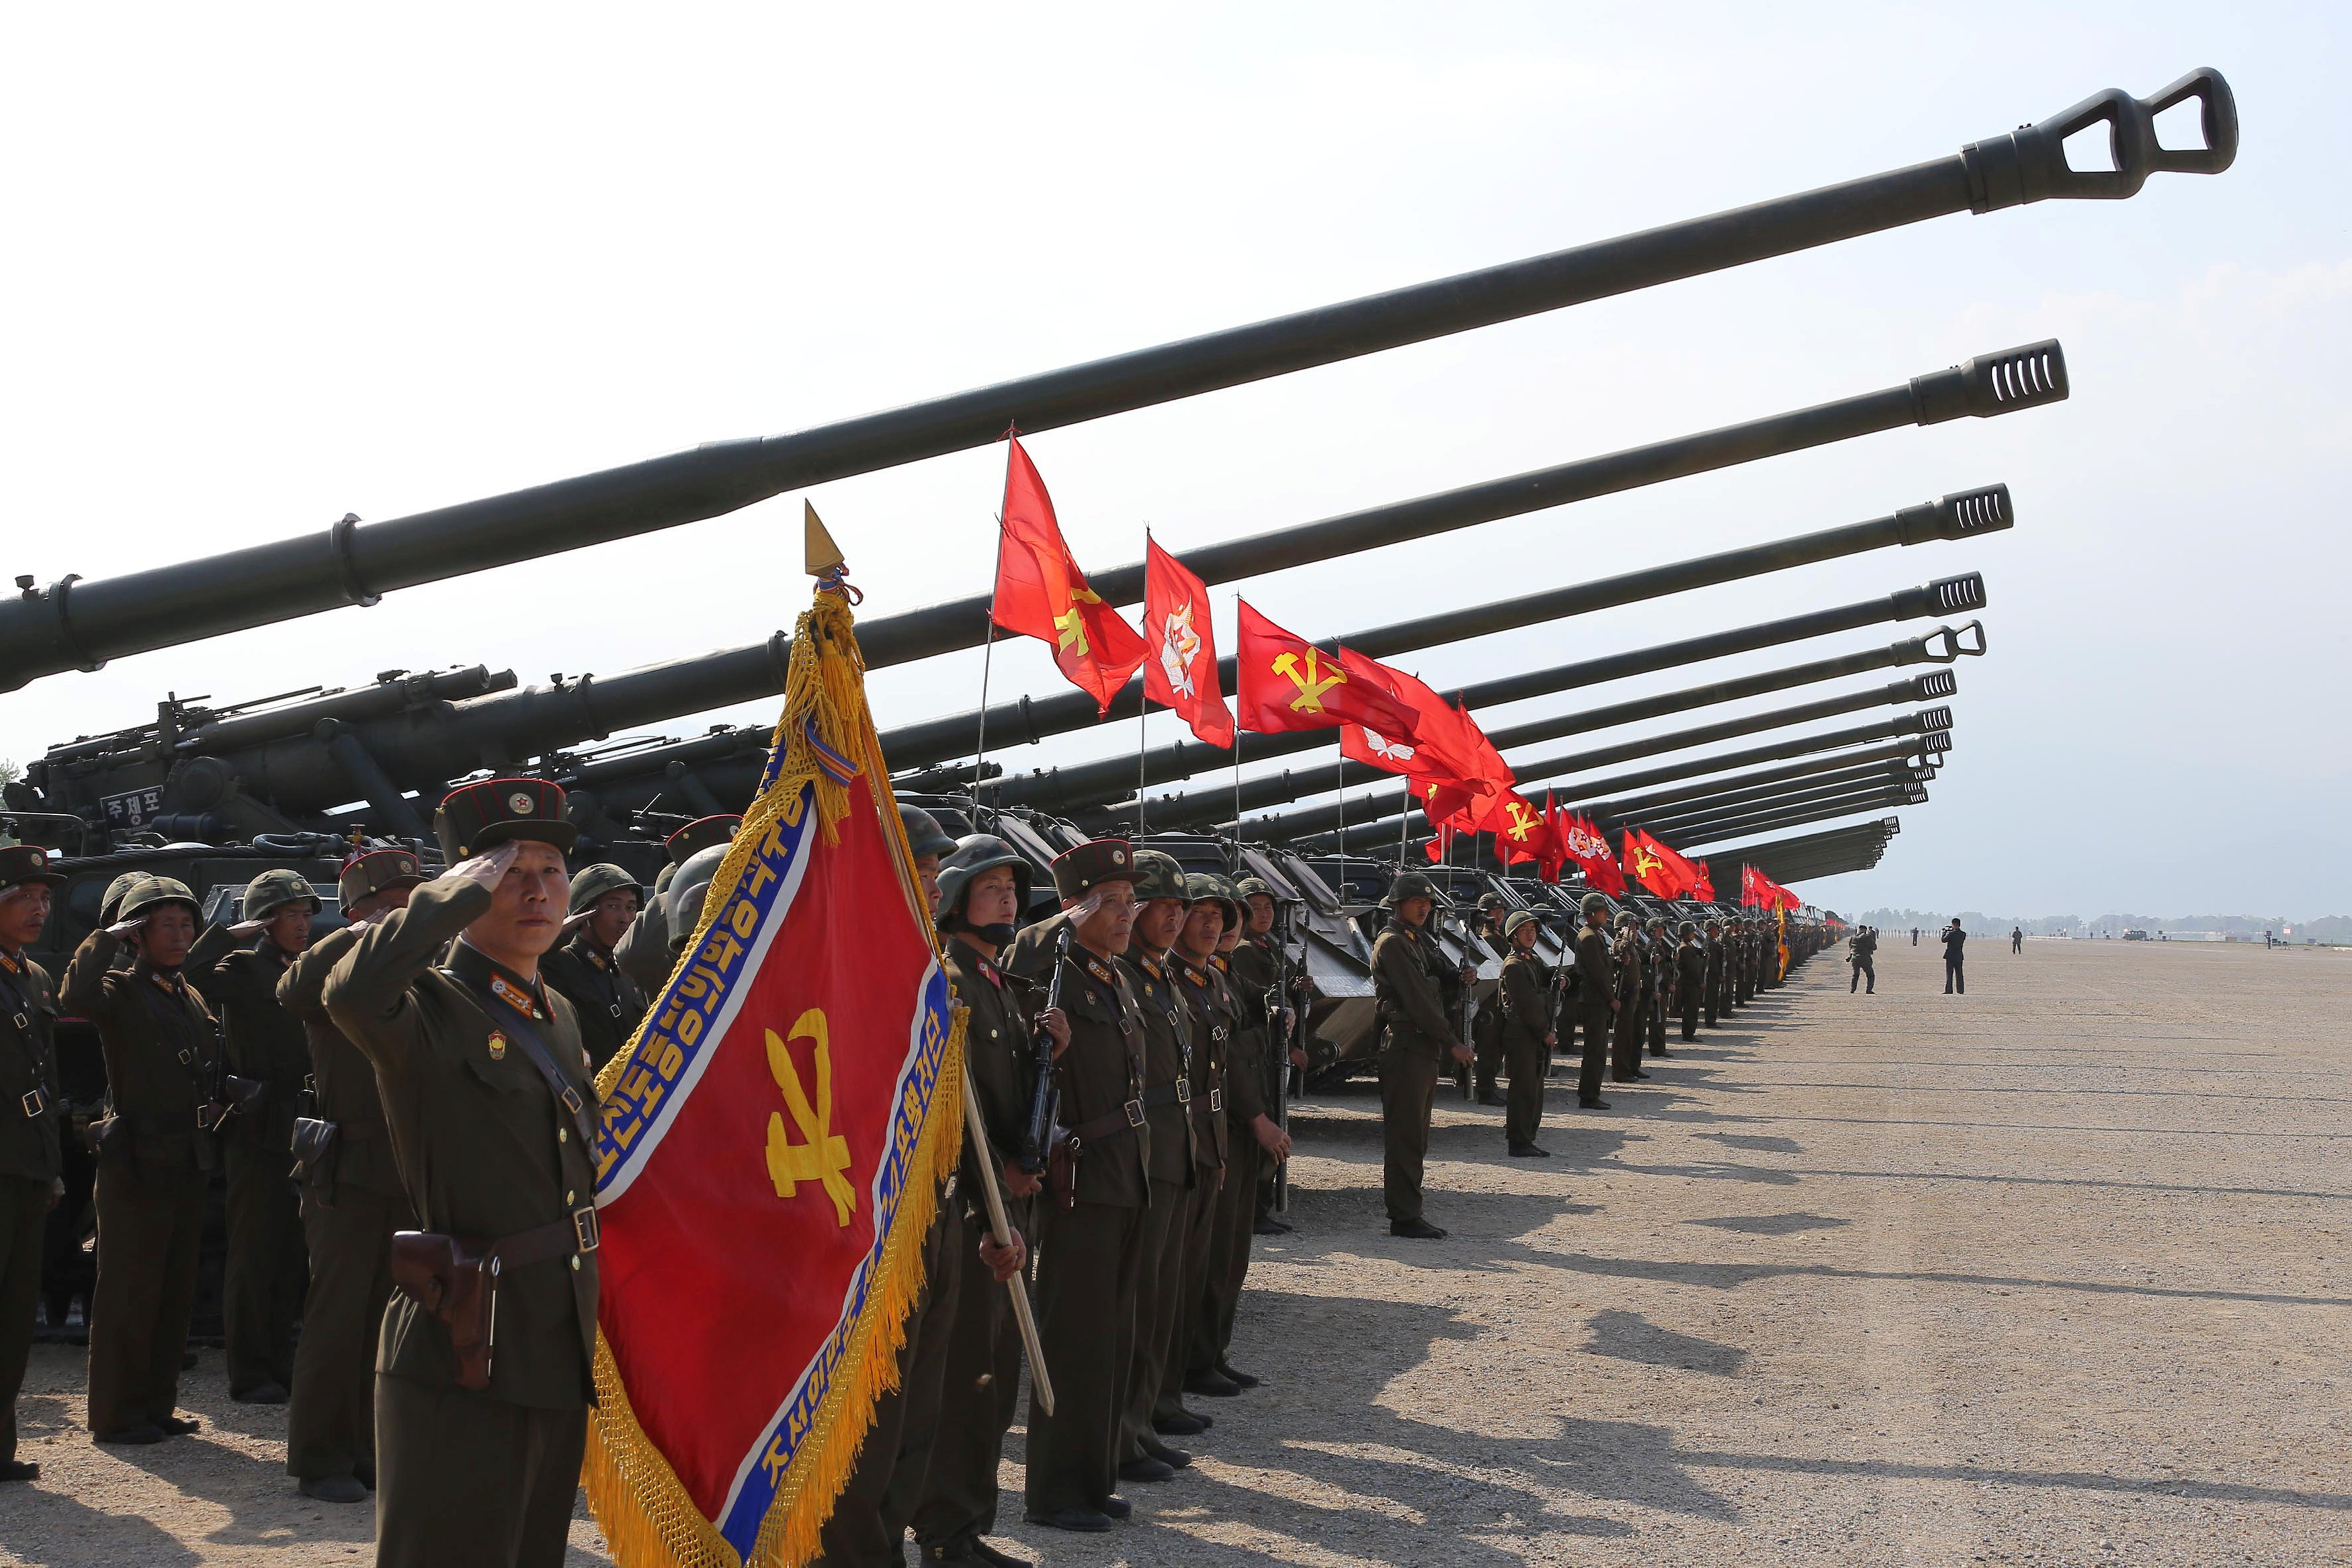 A military drill marking the 85th anniversary of the establishment of the Korean People's Army (KPA) is seen in this handout photo by North Korea's Korean Central News Agency (KCNA) made available on April 26, 2017. KCNA/Handout via REUTERS